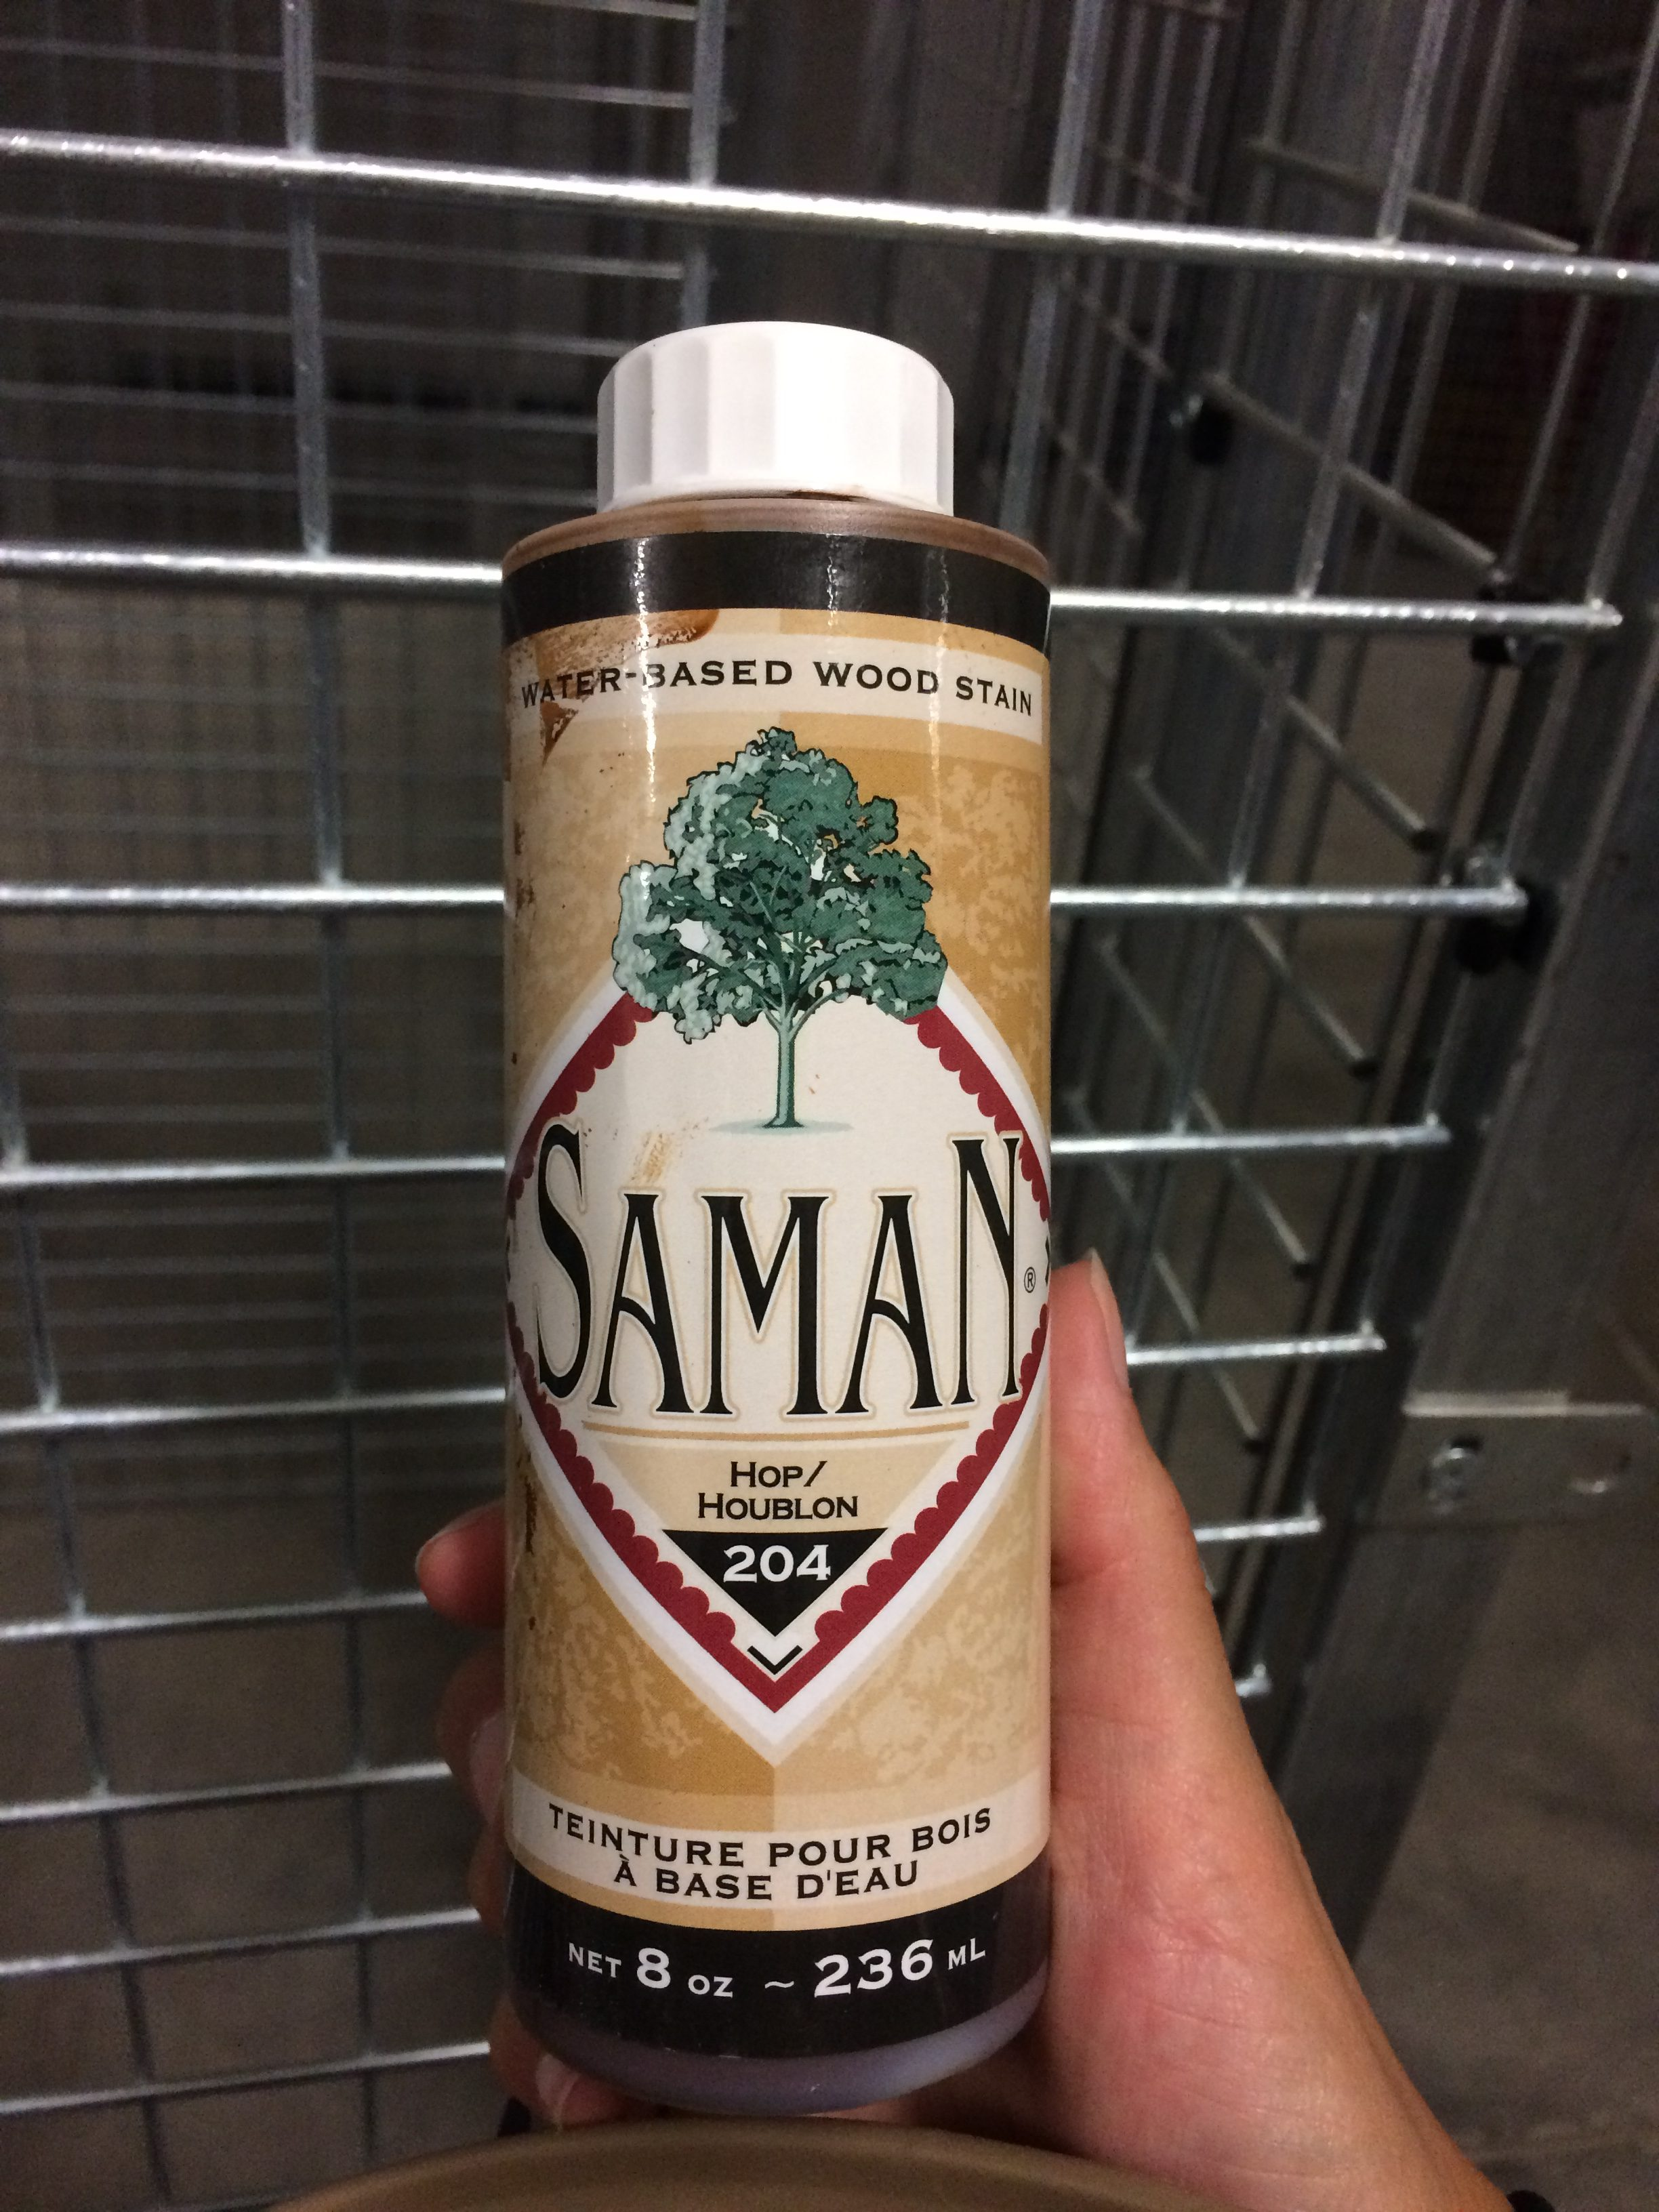 Saman wood stain water based